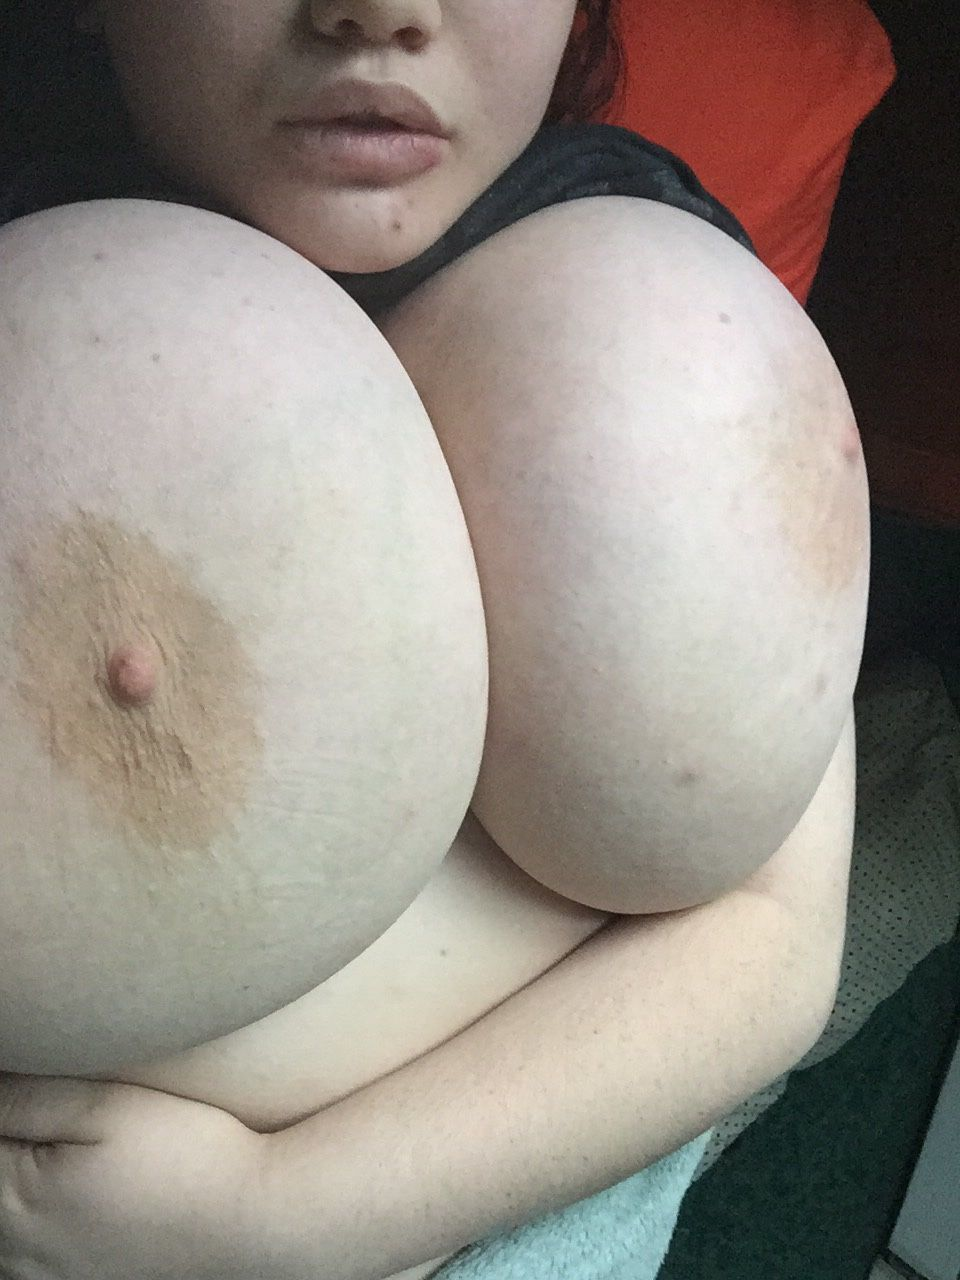 xvideos page 2